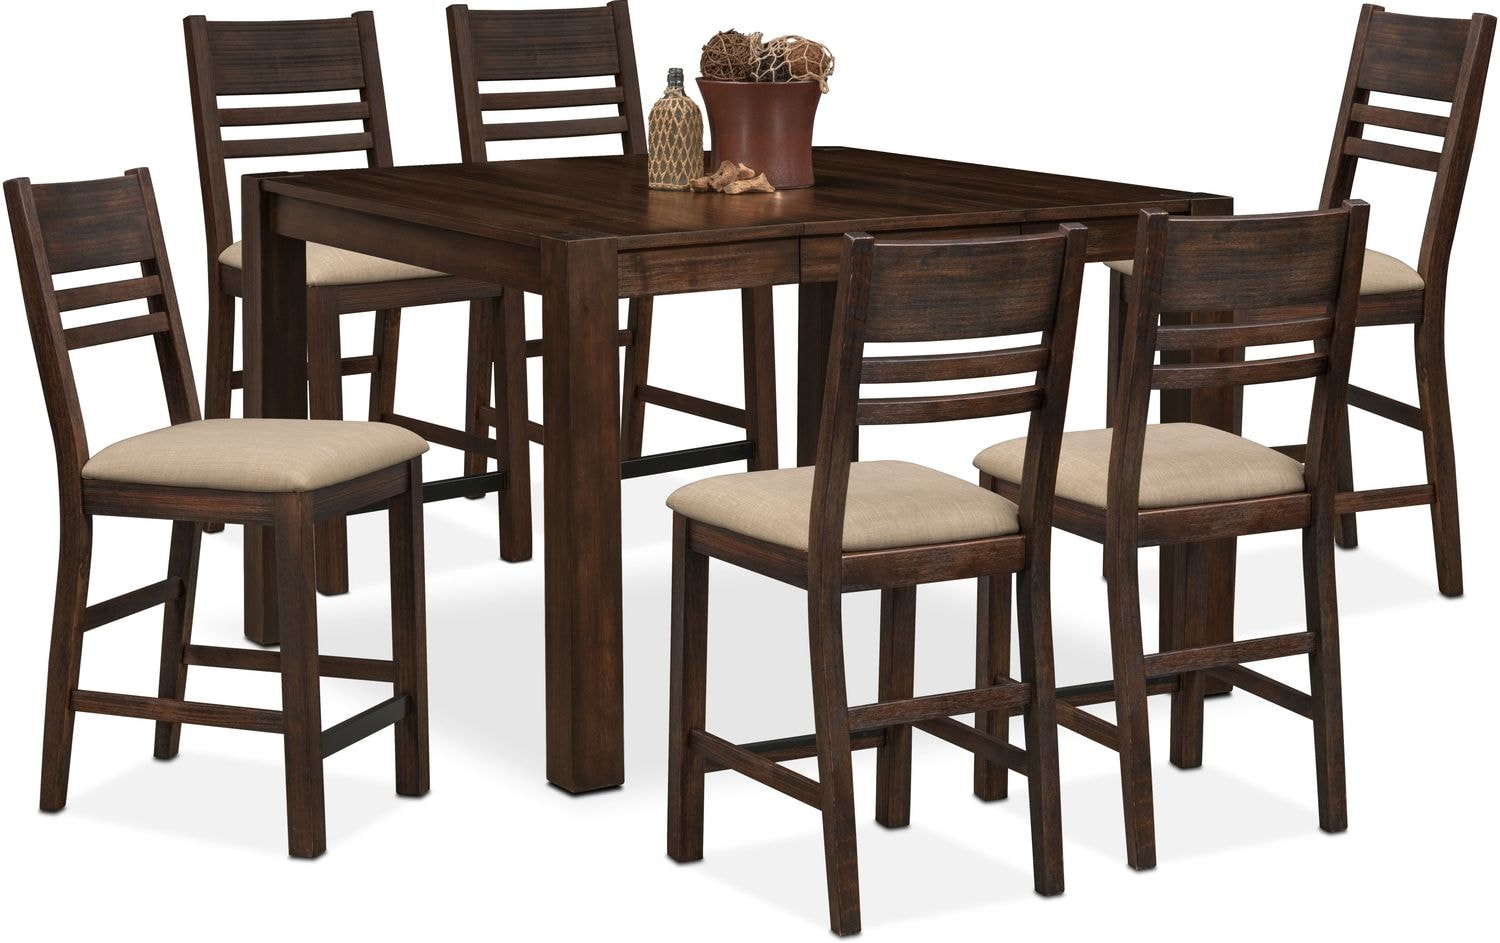 Tribeca Counter Height Table And 6 Side Chairs Tobacco American Signature